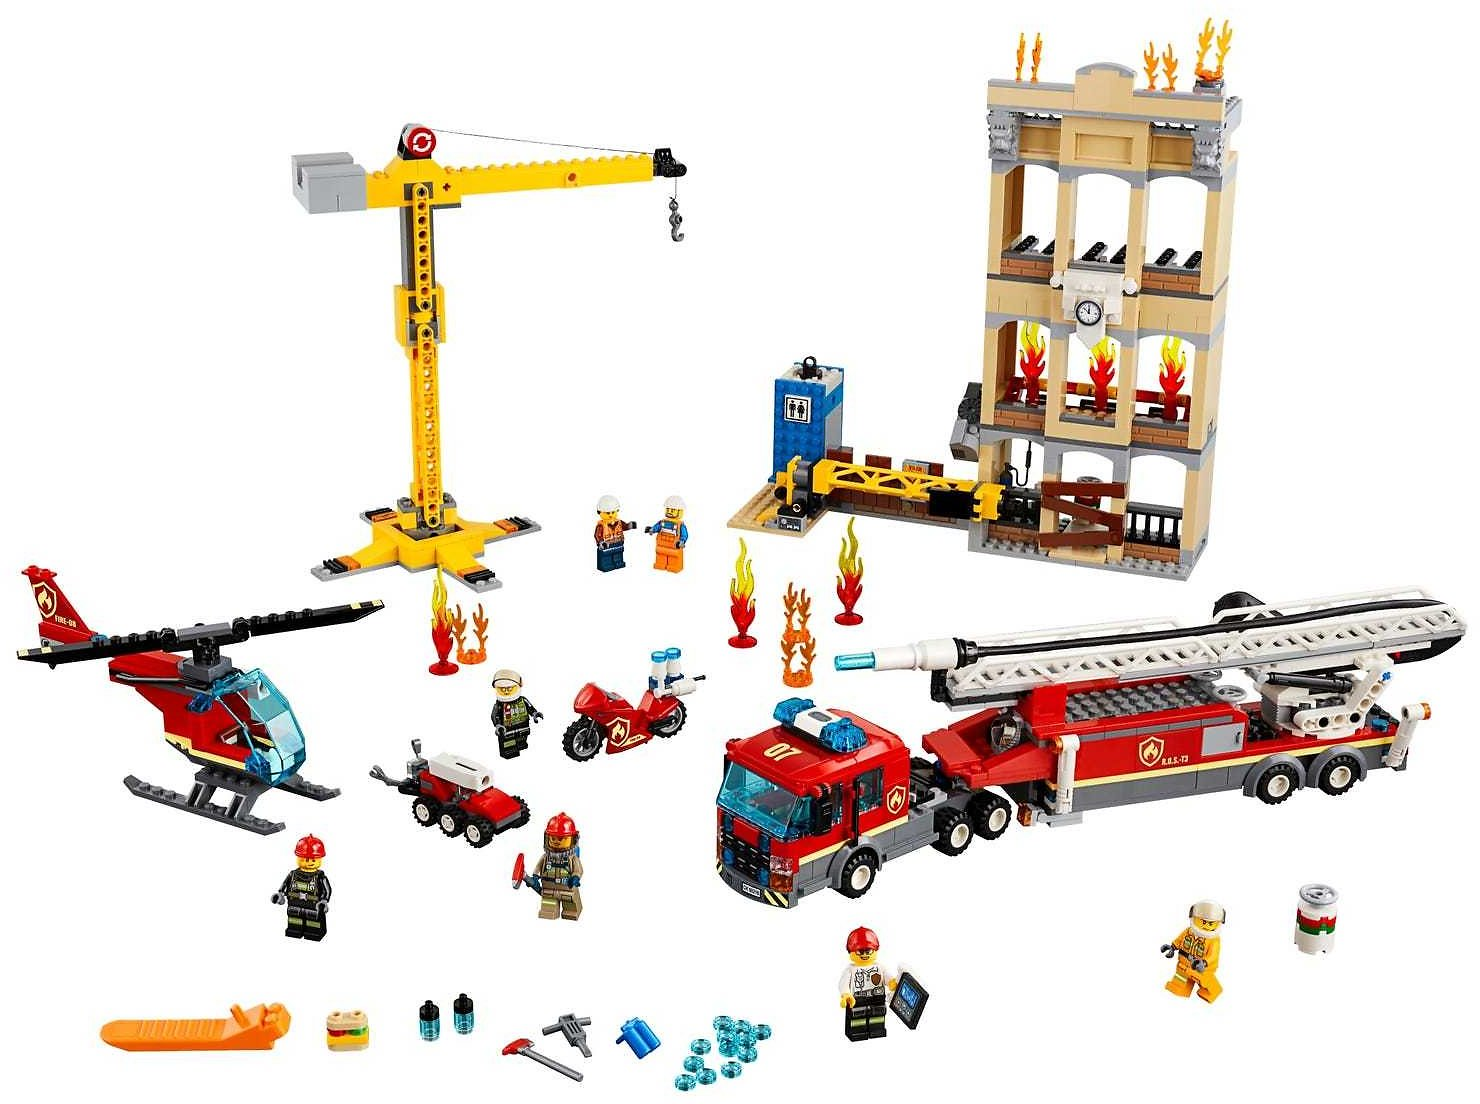 Downtown Fire Brigade 60216 | City | Buy Online At The Official LEGO® Shop US